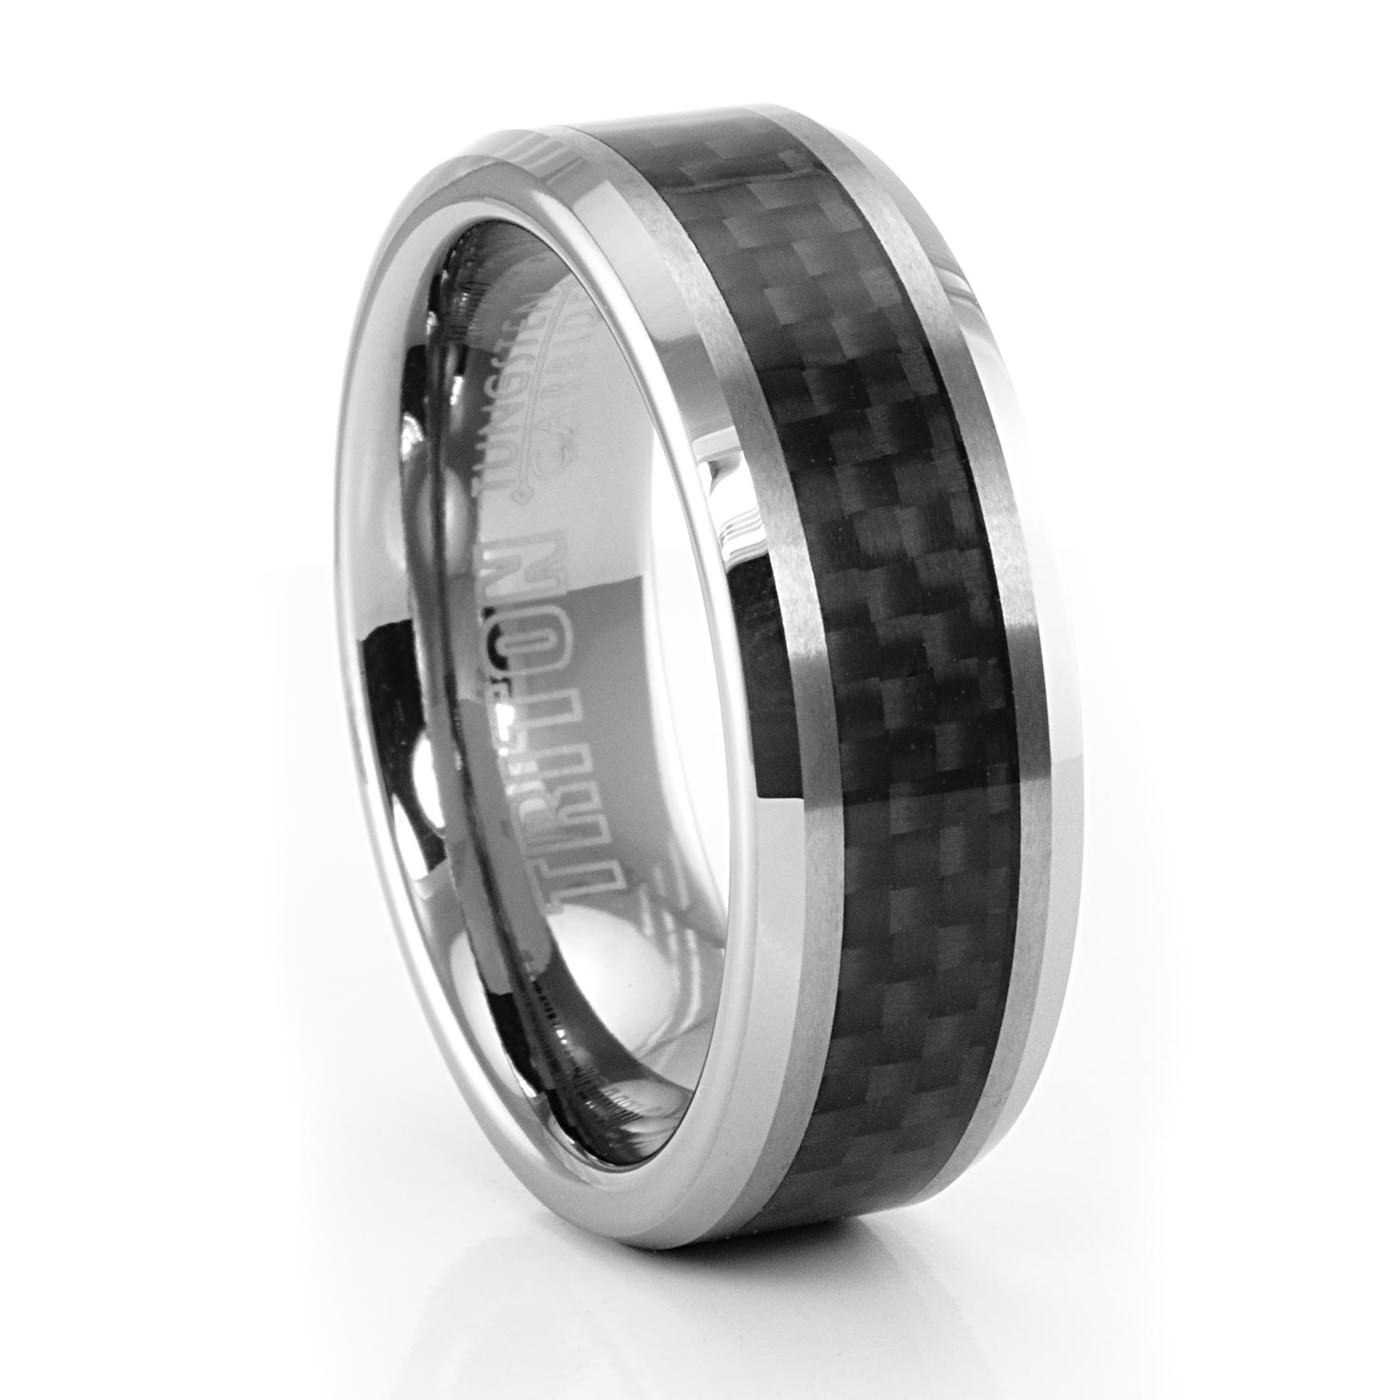 angle rings and carbide wedding jewelry finish triton edge men collections center ring bands bright for g domed tungsten classic round